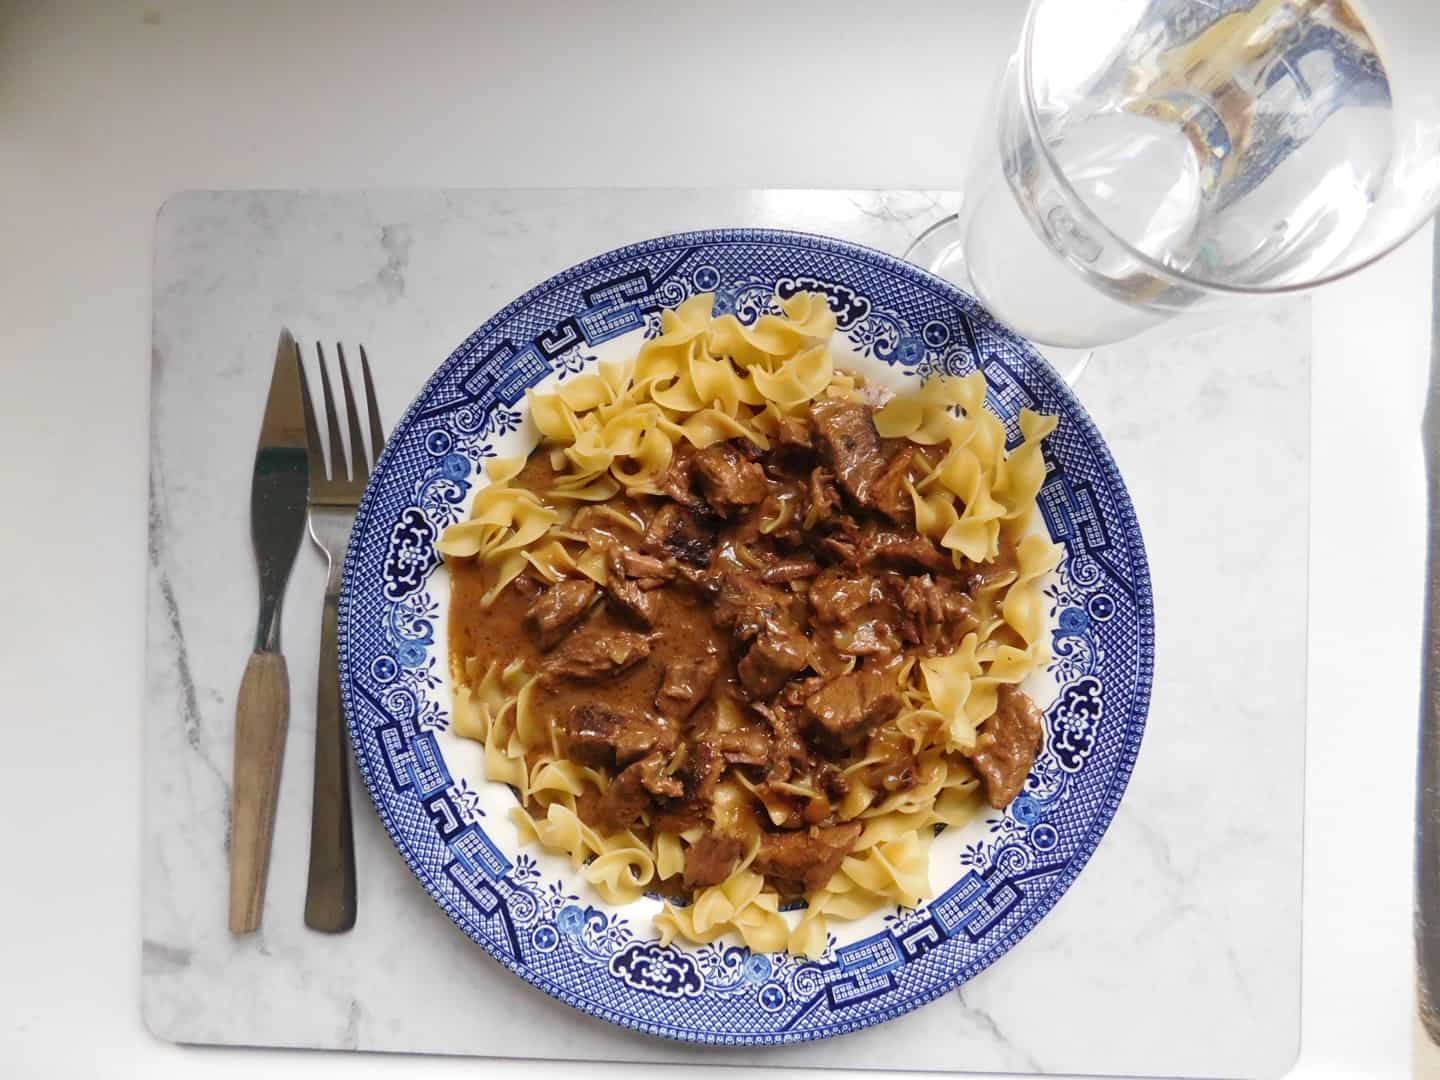 The coziest, creamiest beef tips with egg noodles